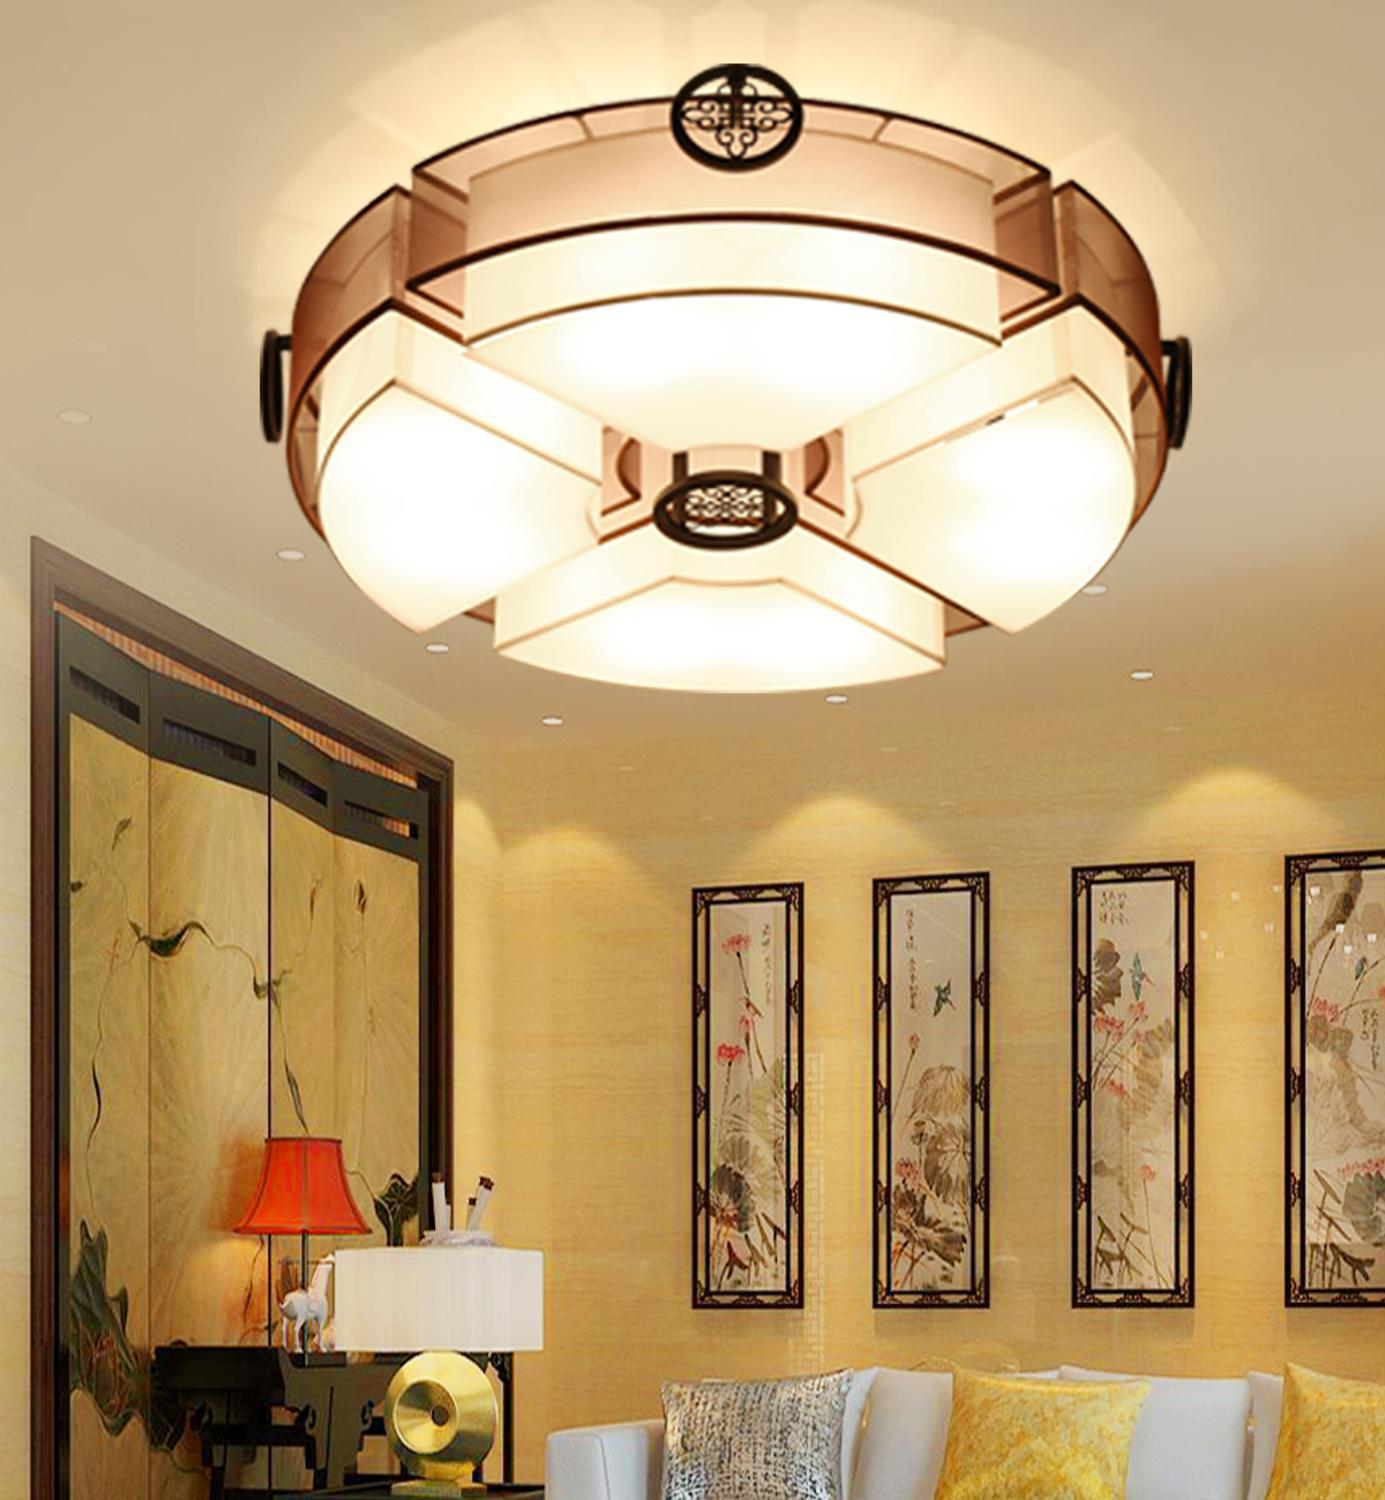 New Chinese Style Ceiling Lamp Living Room Simple Atmosphere Round Led Retro Bedroom Restaurant Study Ceiling Lamp